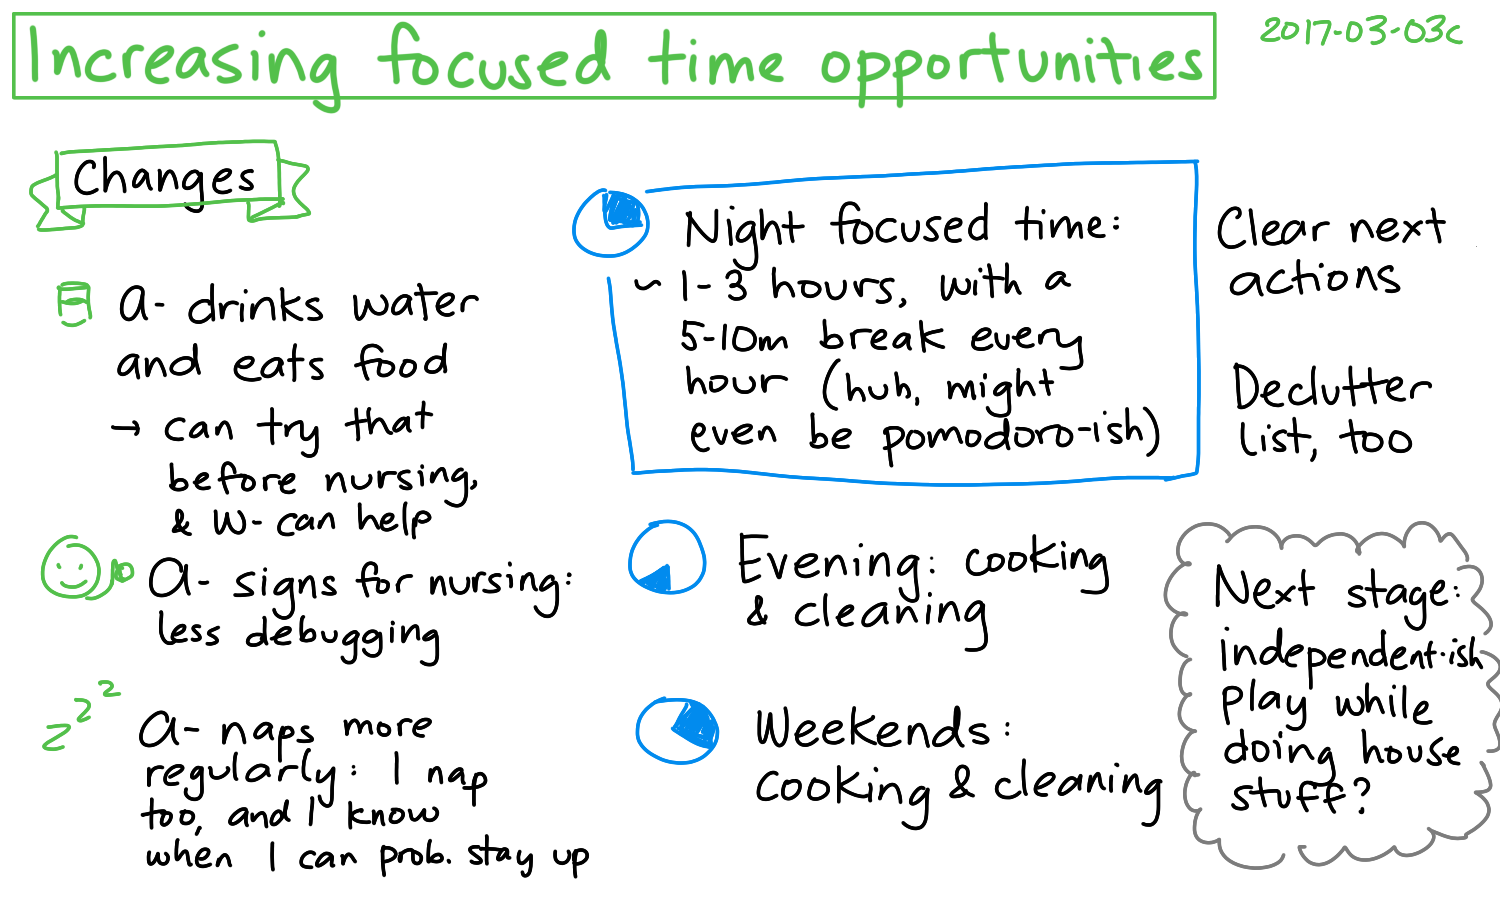 2017-03-03c Increasing focused time opportunities #parenting #time.png